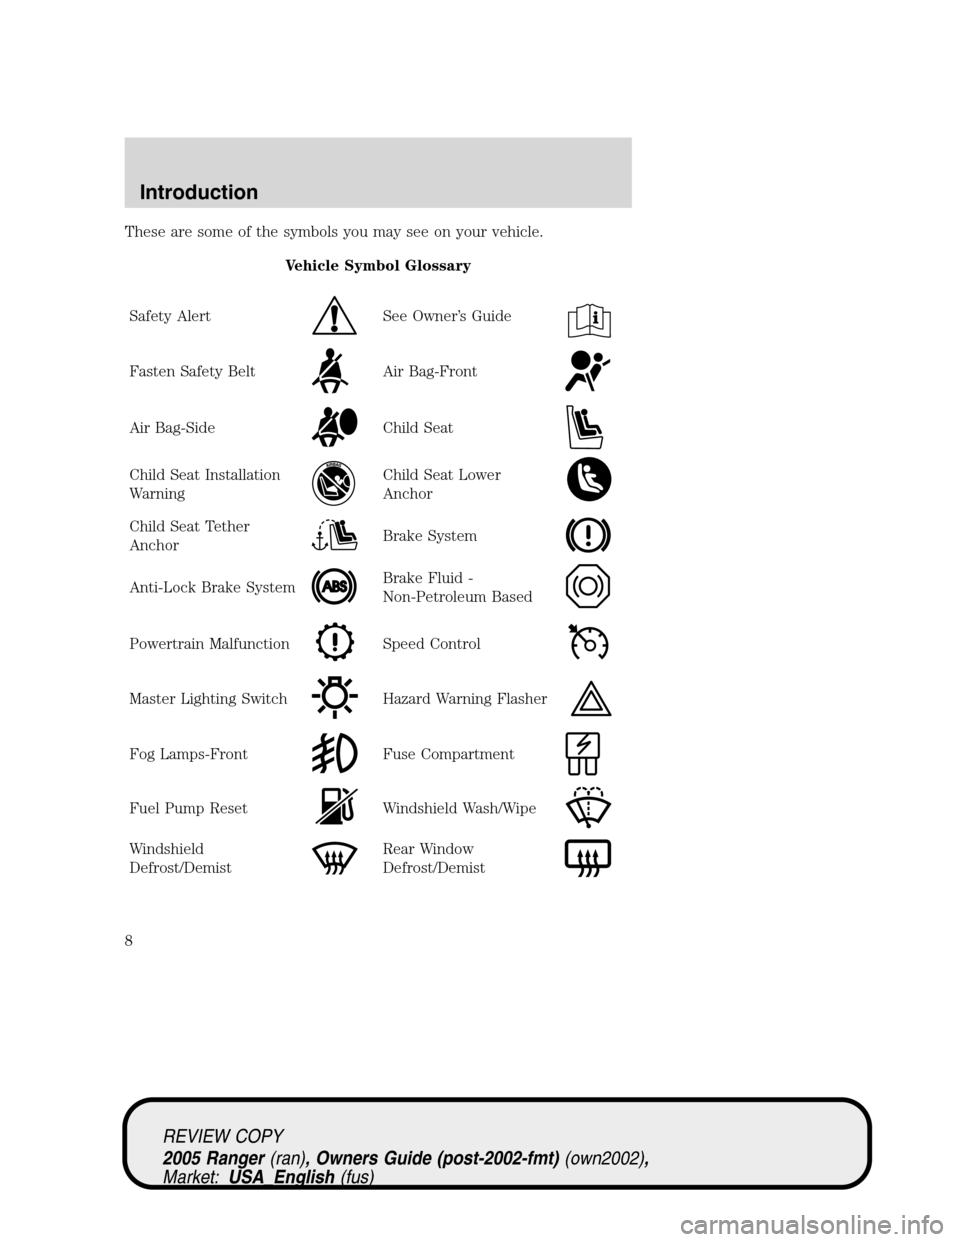 FORD RANGER 2005 2.G Owners Manual These are some of the symbols you may see on your vehicle. Vehicle Symbol Glossary Safety Alert See Owner's Guide Fasten Safety BeltAir Bag-Front Air Bag-SideChild Seat Child Seat Installation Warni